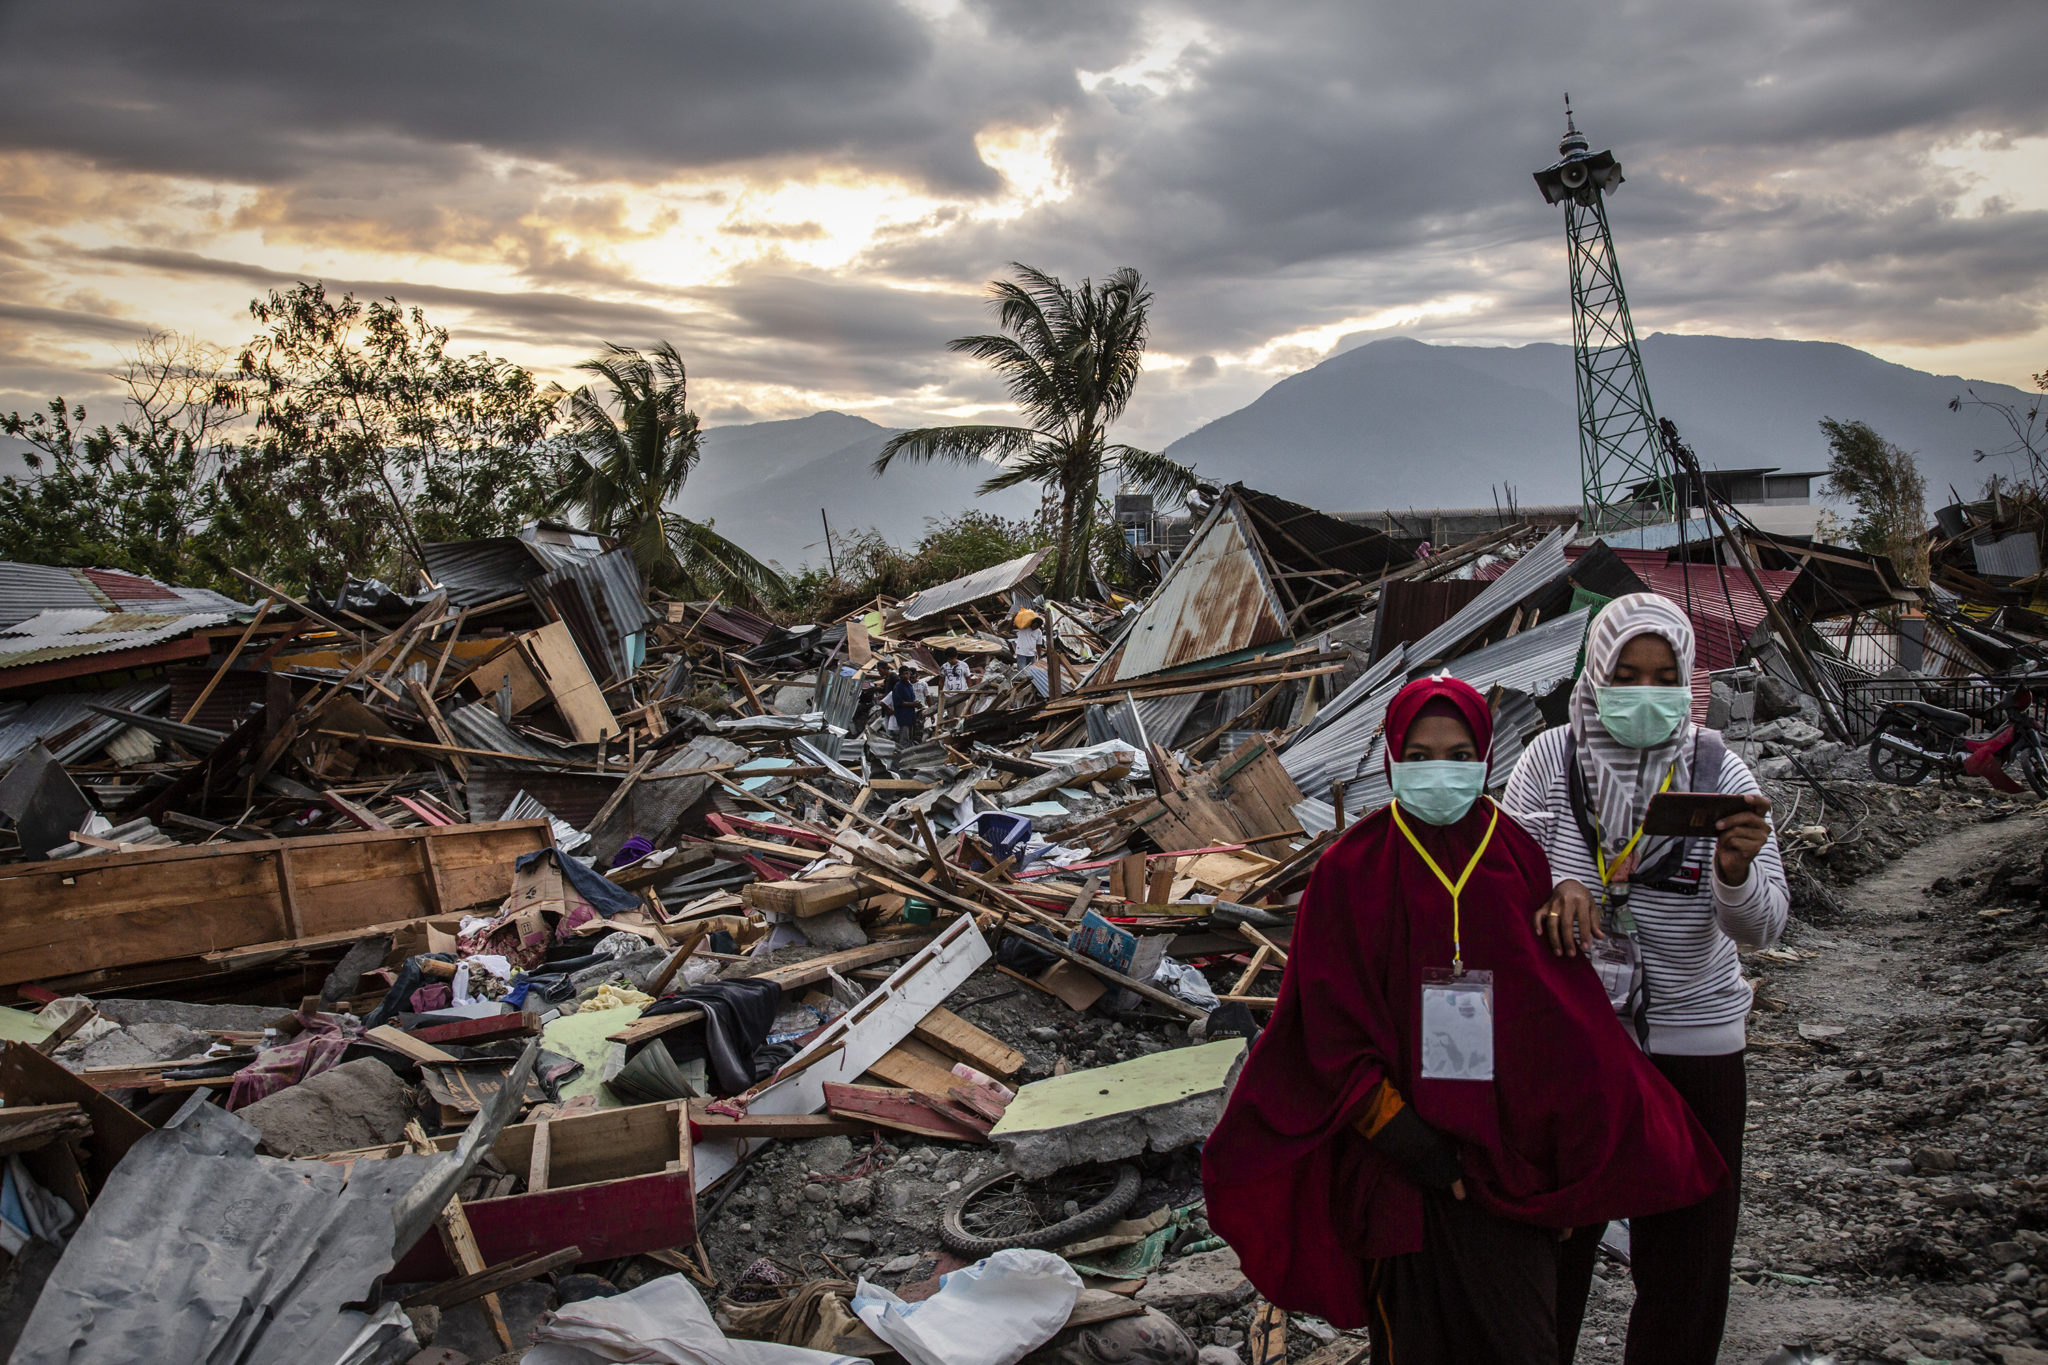 PALU, INDONESIA - OCTOBER 05: People walk along a damaged area which was hit by liquefaction in Petobo village following the earthquake on October 5, 2018 in Palu, Central Sulawesi, Indonesia. The death toll from last weeks earthquake and tsunami has risen to at least 1,558 but widely expected to rise as officials said on Friday the number of victims of the liquefaction could be up to a thousand. Power had returned to parts of the city and fuel shipments have begun to flow back but some affected towns remain inaccessible with the infrastructure badly damaged. A tsunami triggered by a magnitude 7.5 earthquake slammed into Indonesia's coastline on the island of Sulawesi which destroyed or damaged over 70,000 homes as tensions remain high with desperate survivors trying to secure basics like clean water and fuel for generators. (Photo by Ulet Ifansasti/Getty Images)